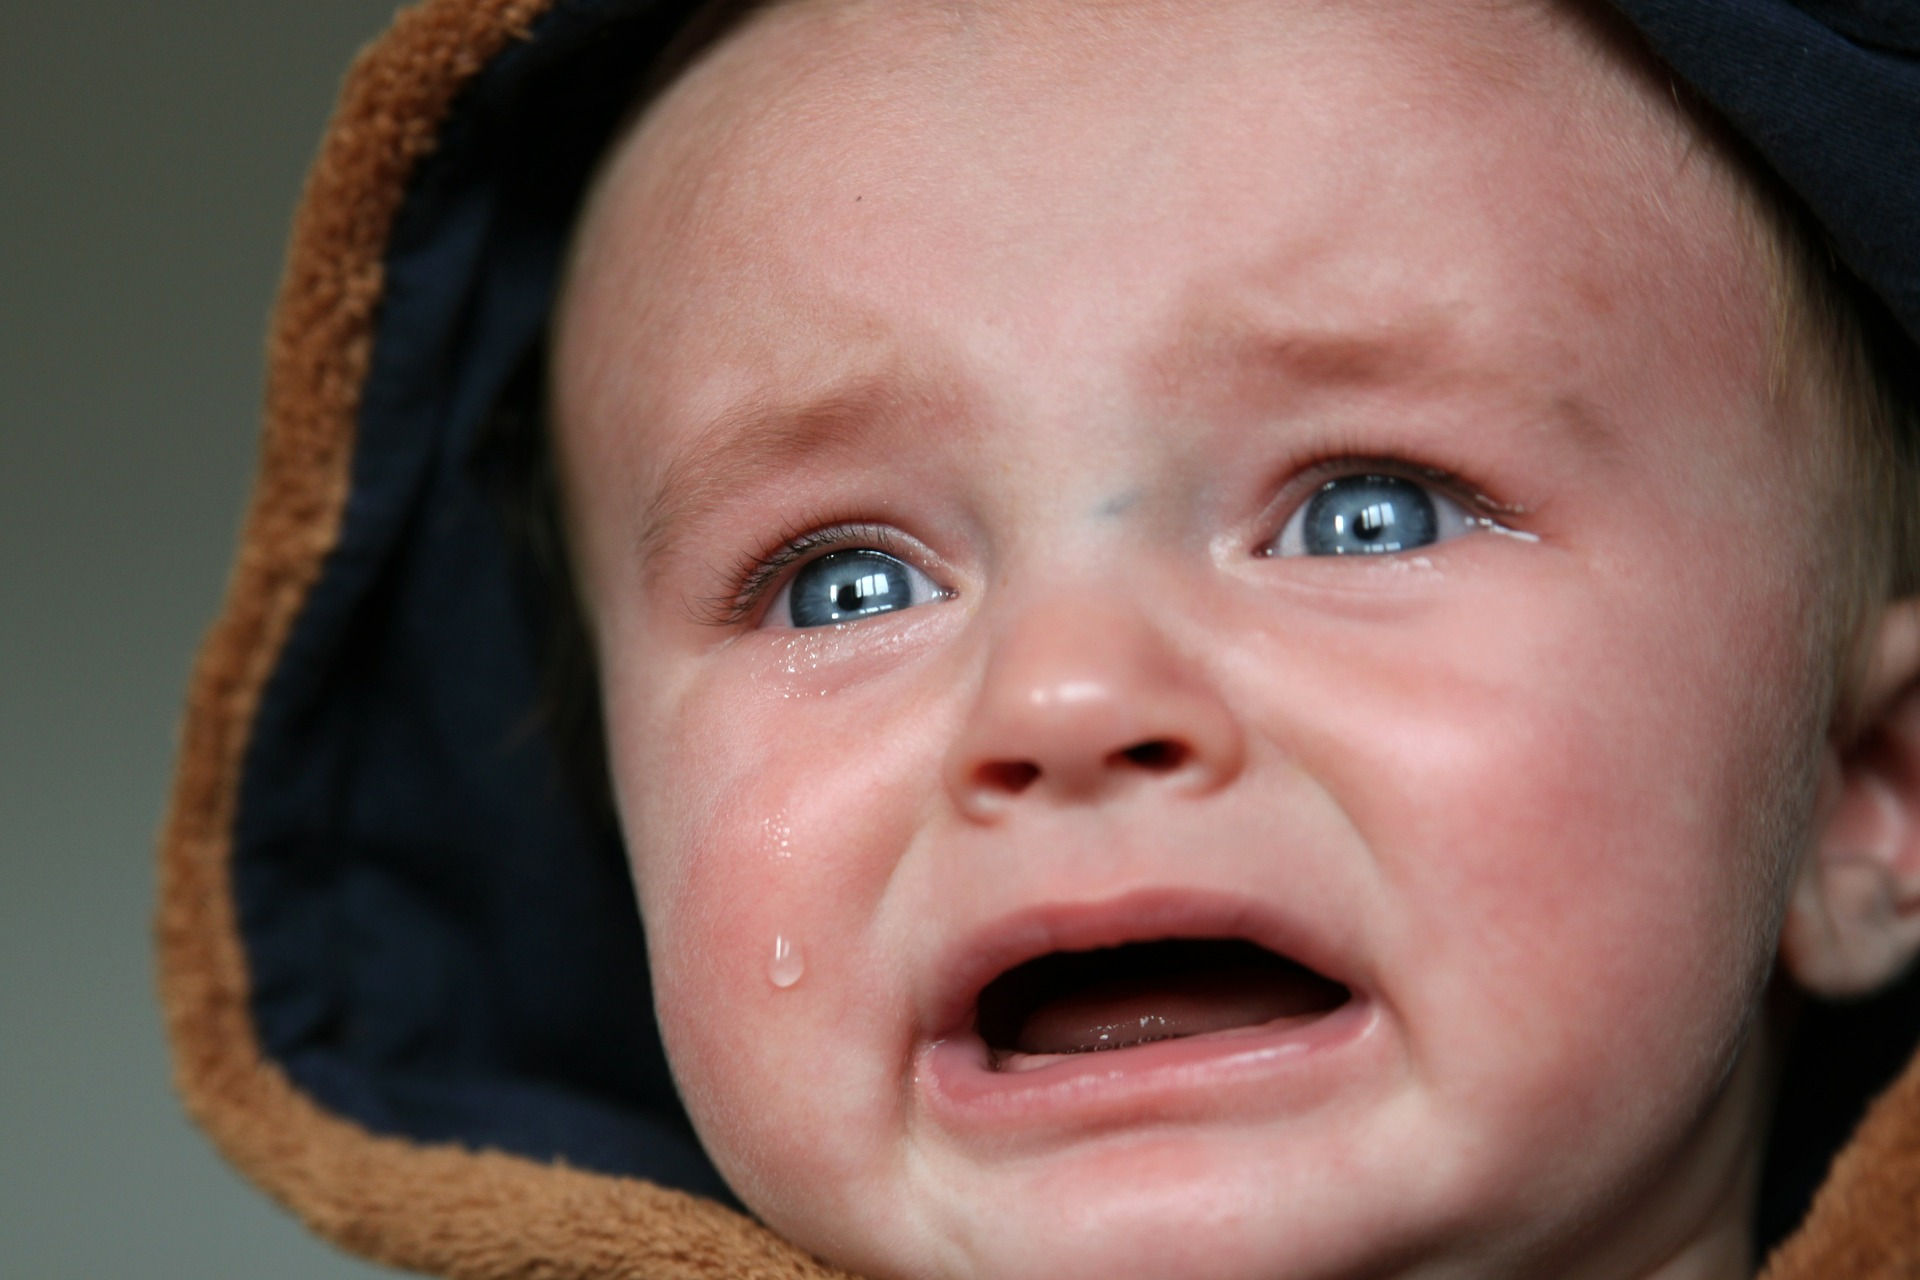 Baby crying. Photo credit: TaniaVdB on Pixabay.